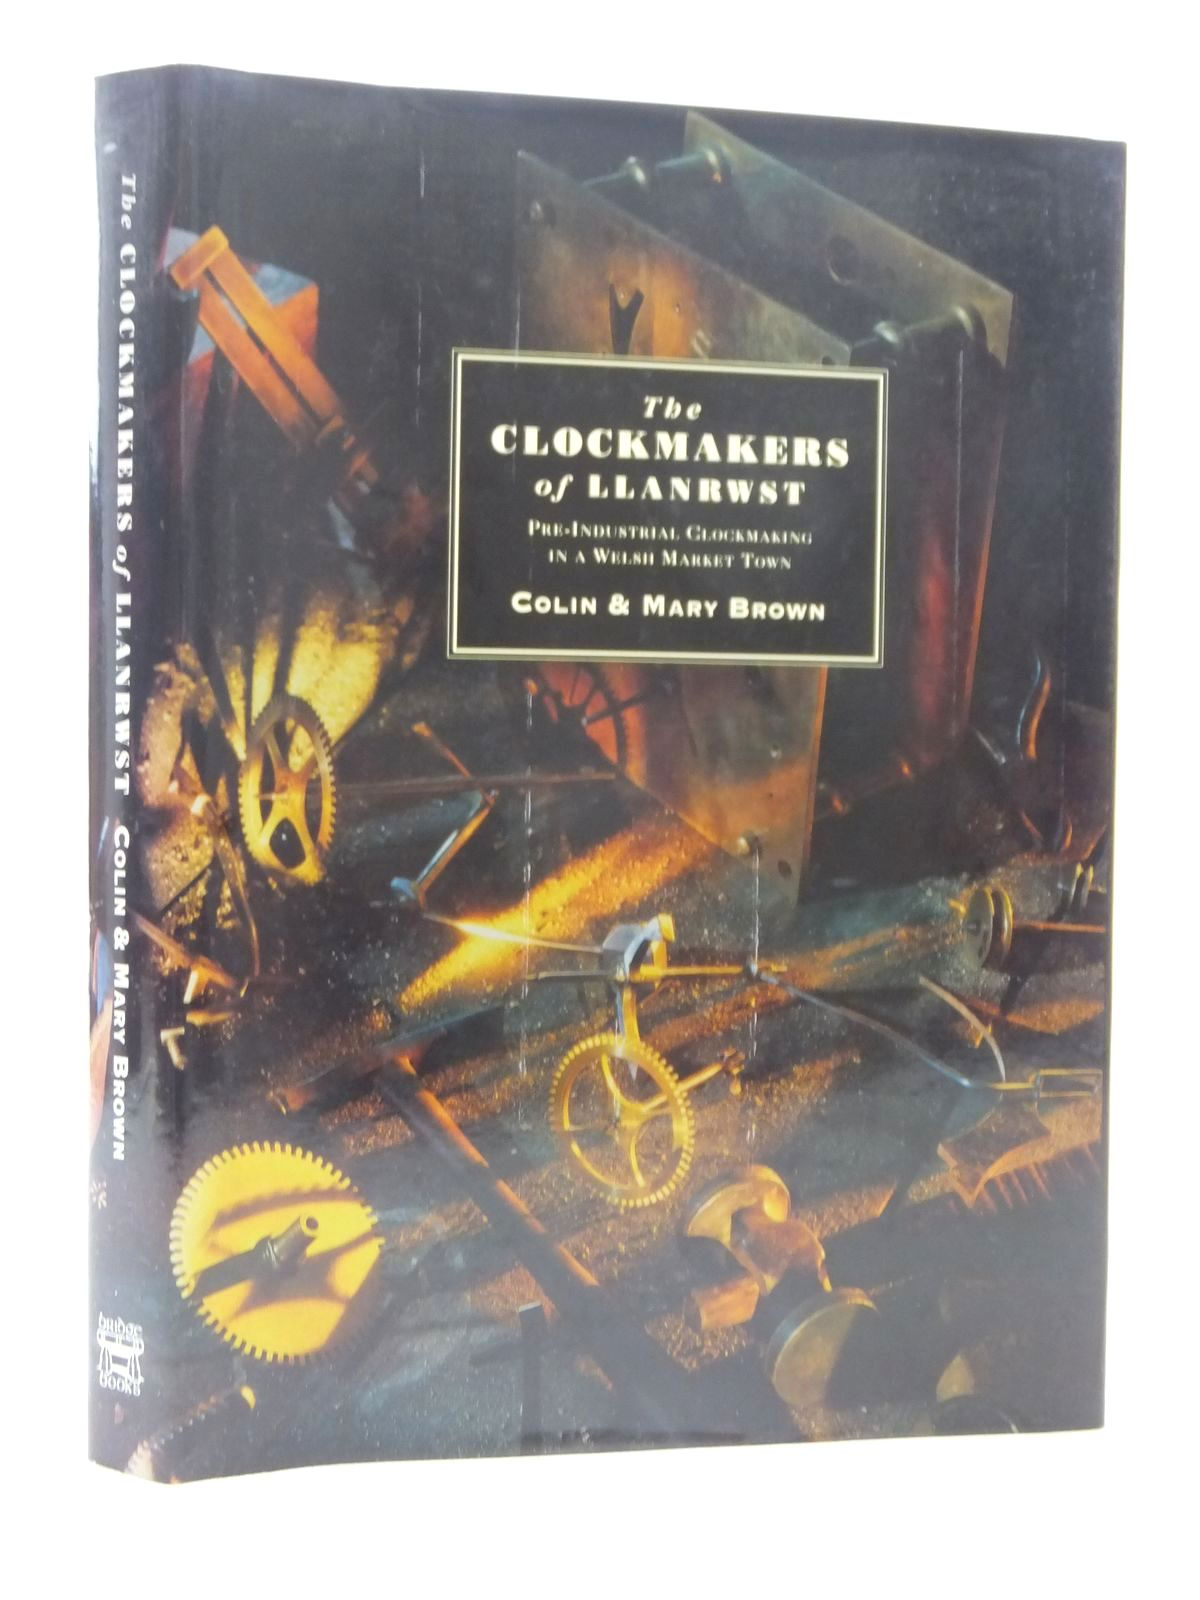 Photo of THE CLOCKMAKERS OF LLANRWST PRE-INDUSTRIAL CLOCKMAKING IN A WELSH MARKET TOWN written by Brown, Colin<br />Brown, Mary published by Bridge Books (STOCK CODE: 1815463)  for sale by Stella & Rose's Books